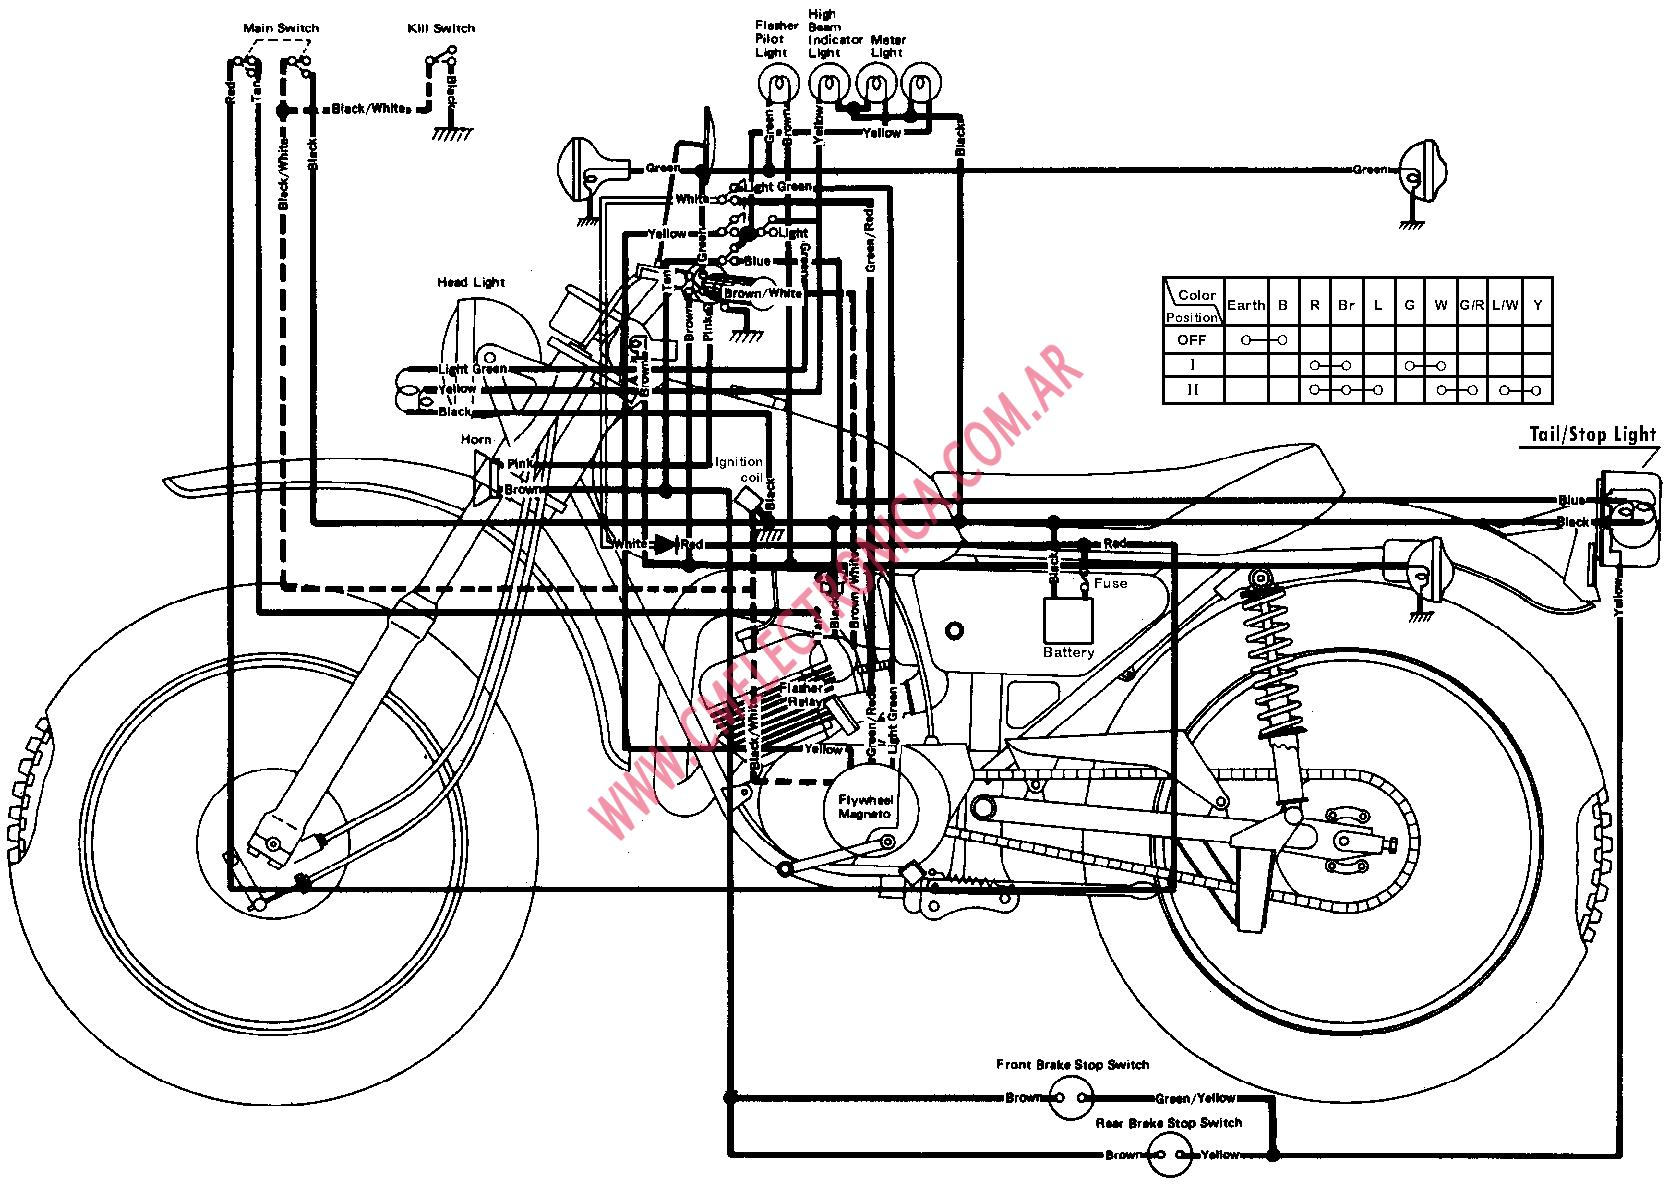 1980 dt 250 wiring diagram gmc fuse box diagrams wiring